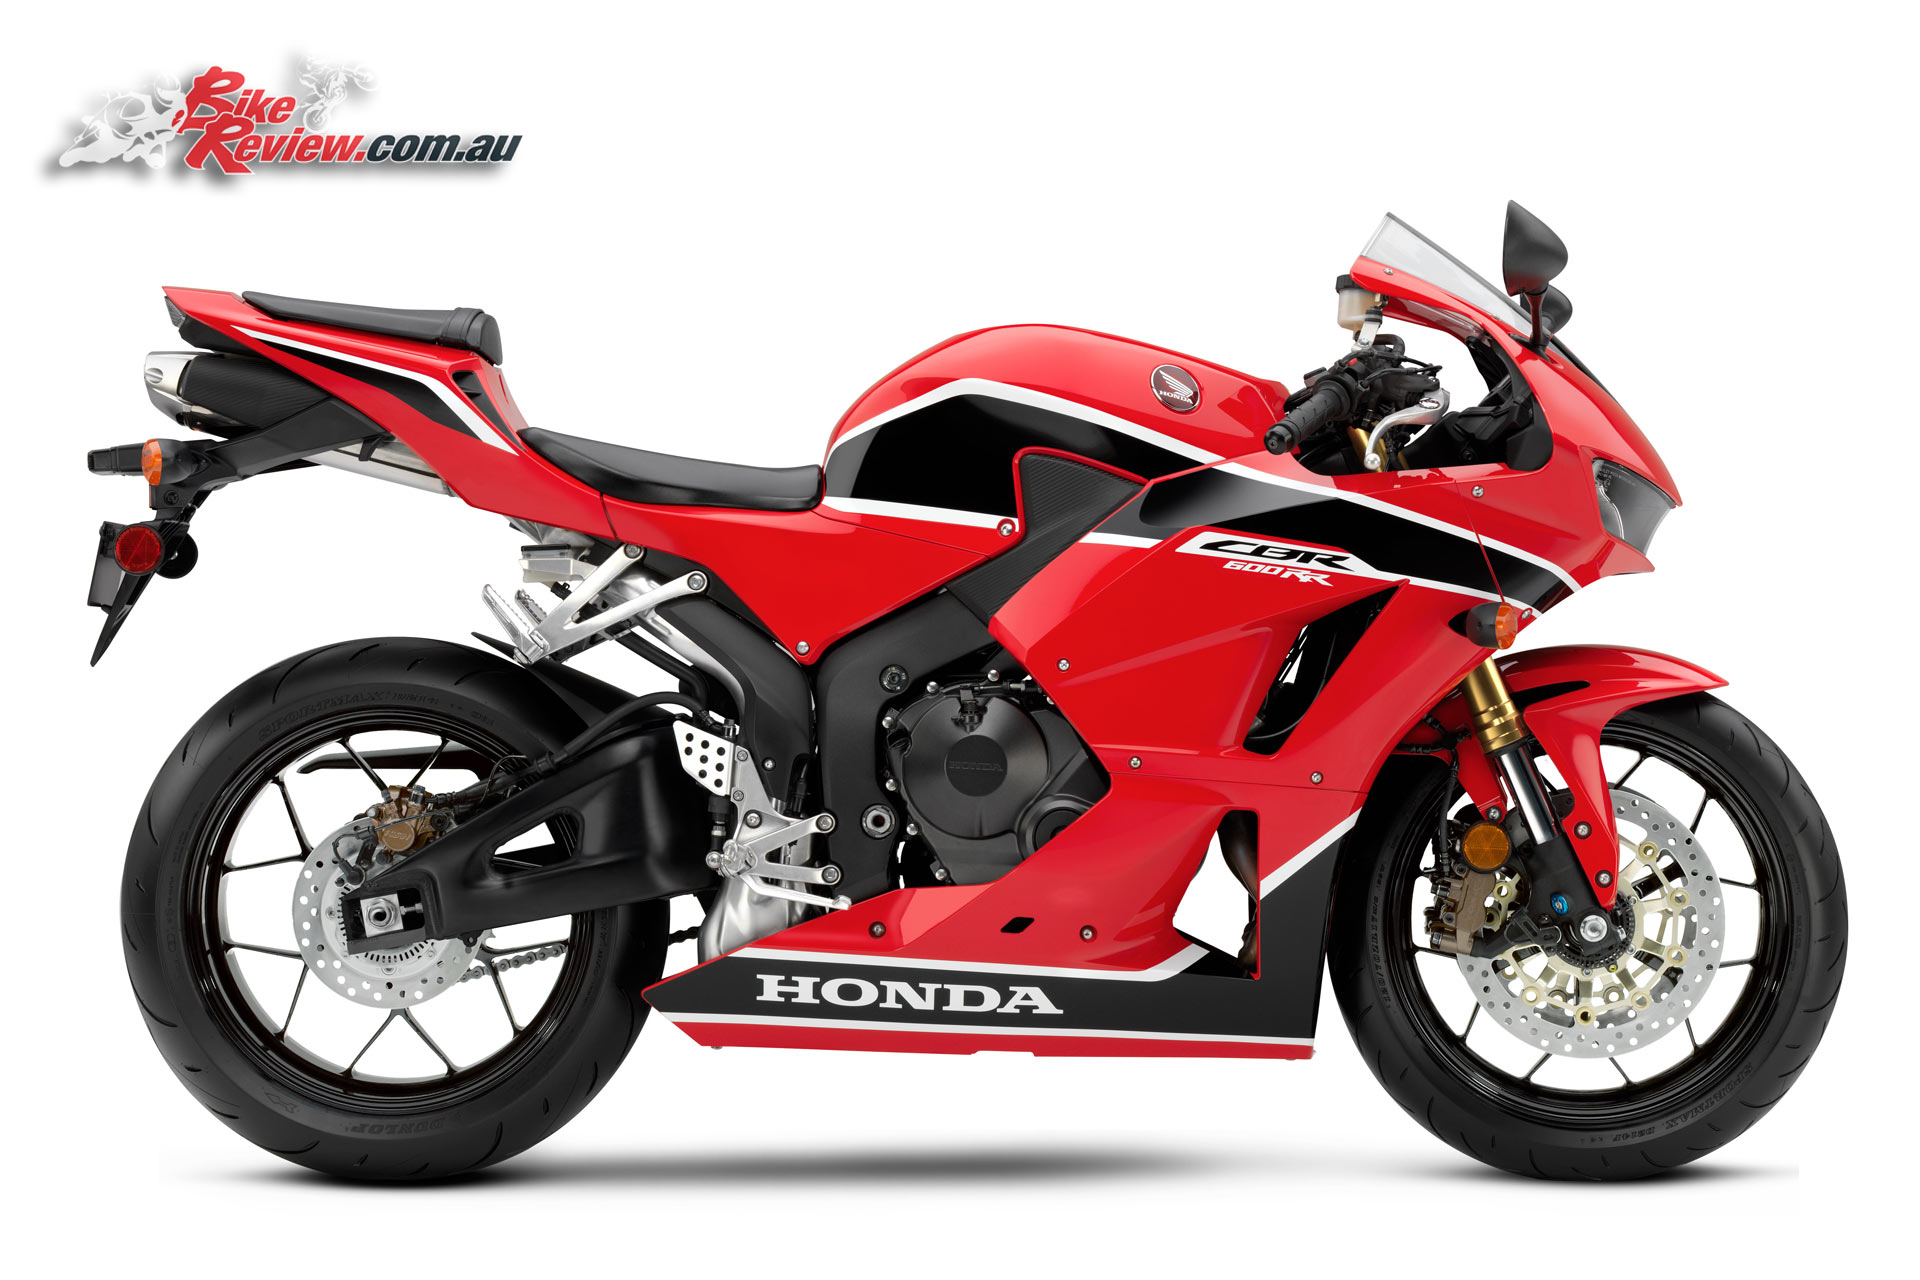 Honda Riding Gear >> Honda reveal 2017 CBR600RR - Bike Review